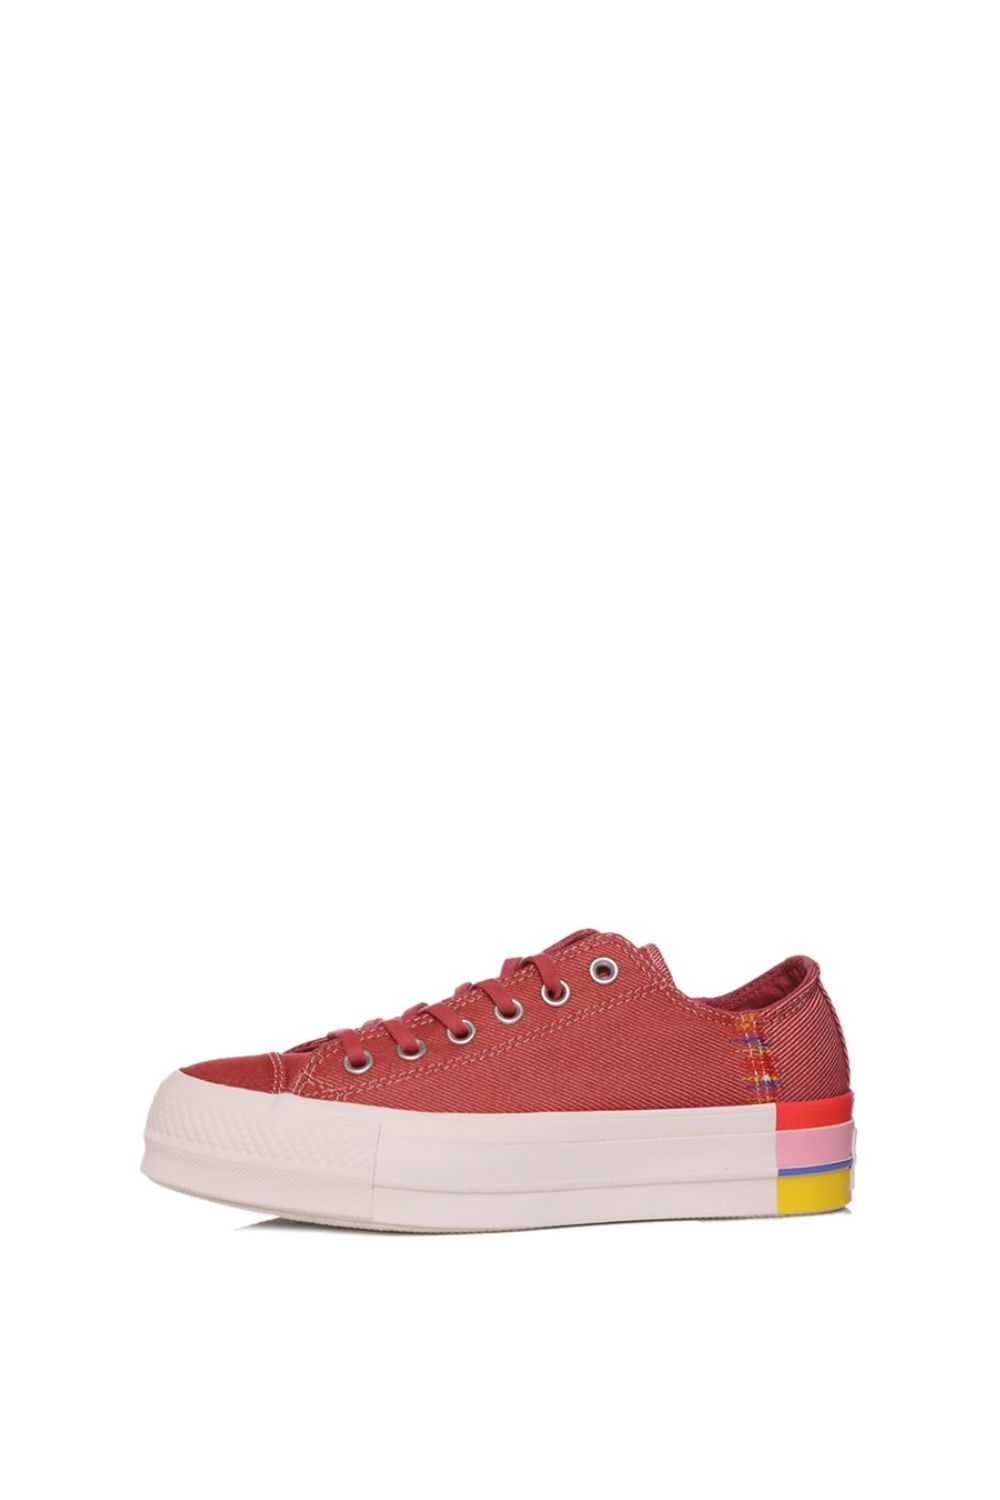 CONVERSE – Γυναικεία sneakers CONVERSE CHUCK TAYLOR ALL STAR LIFT κόκκινα